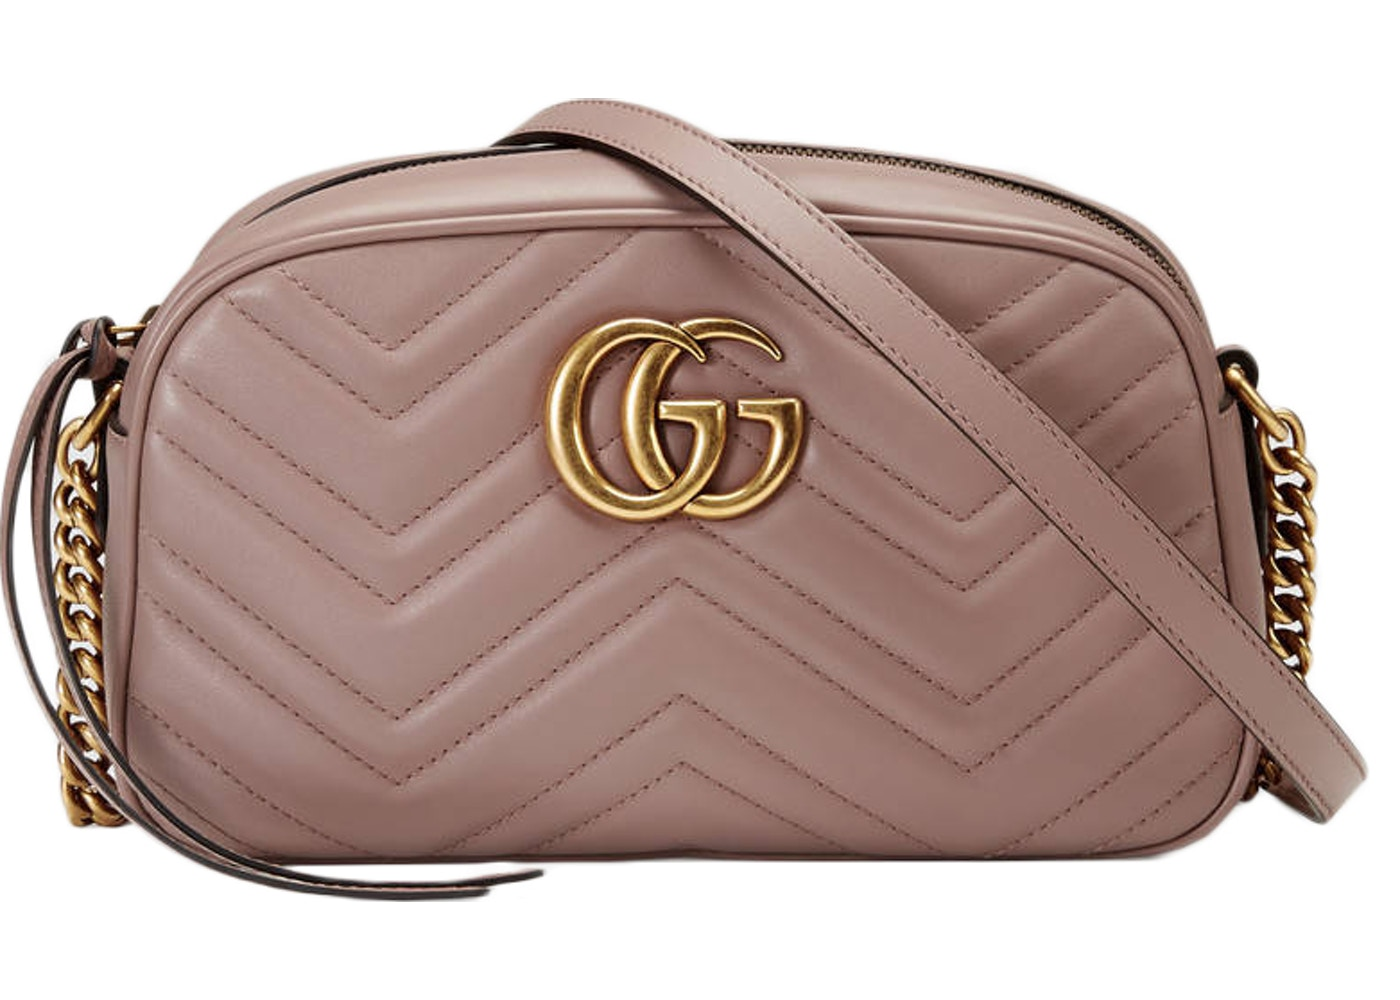 792d84c058eec Gucci GG Marmont Shoulder Camera Small Nude. Small Nude